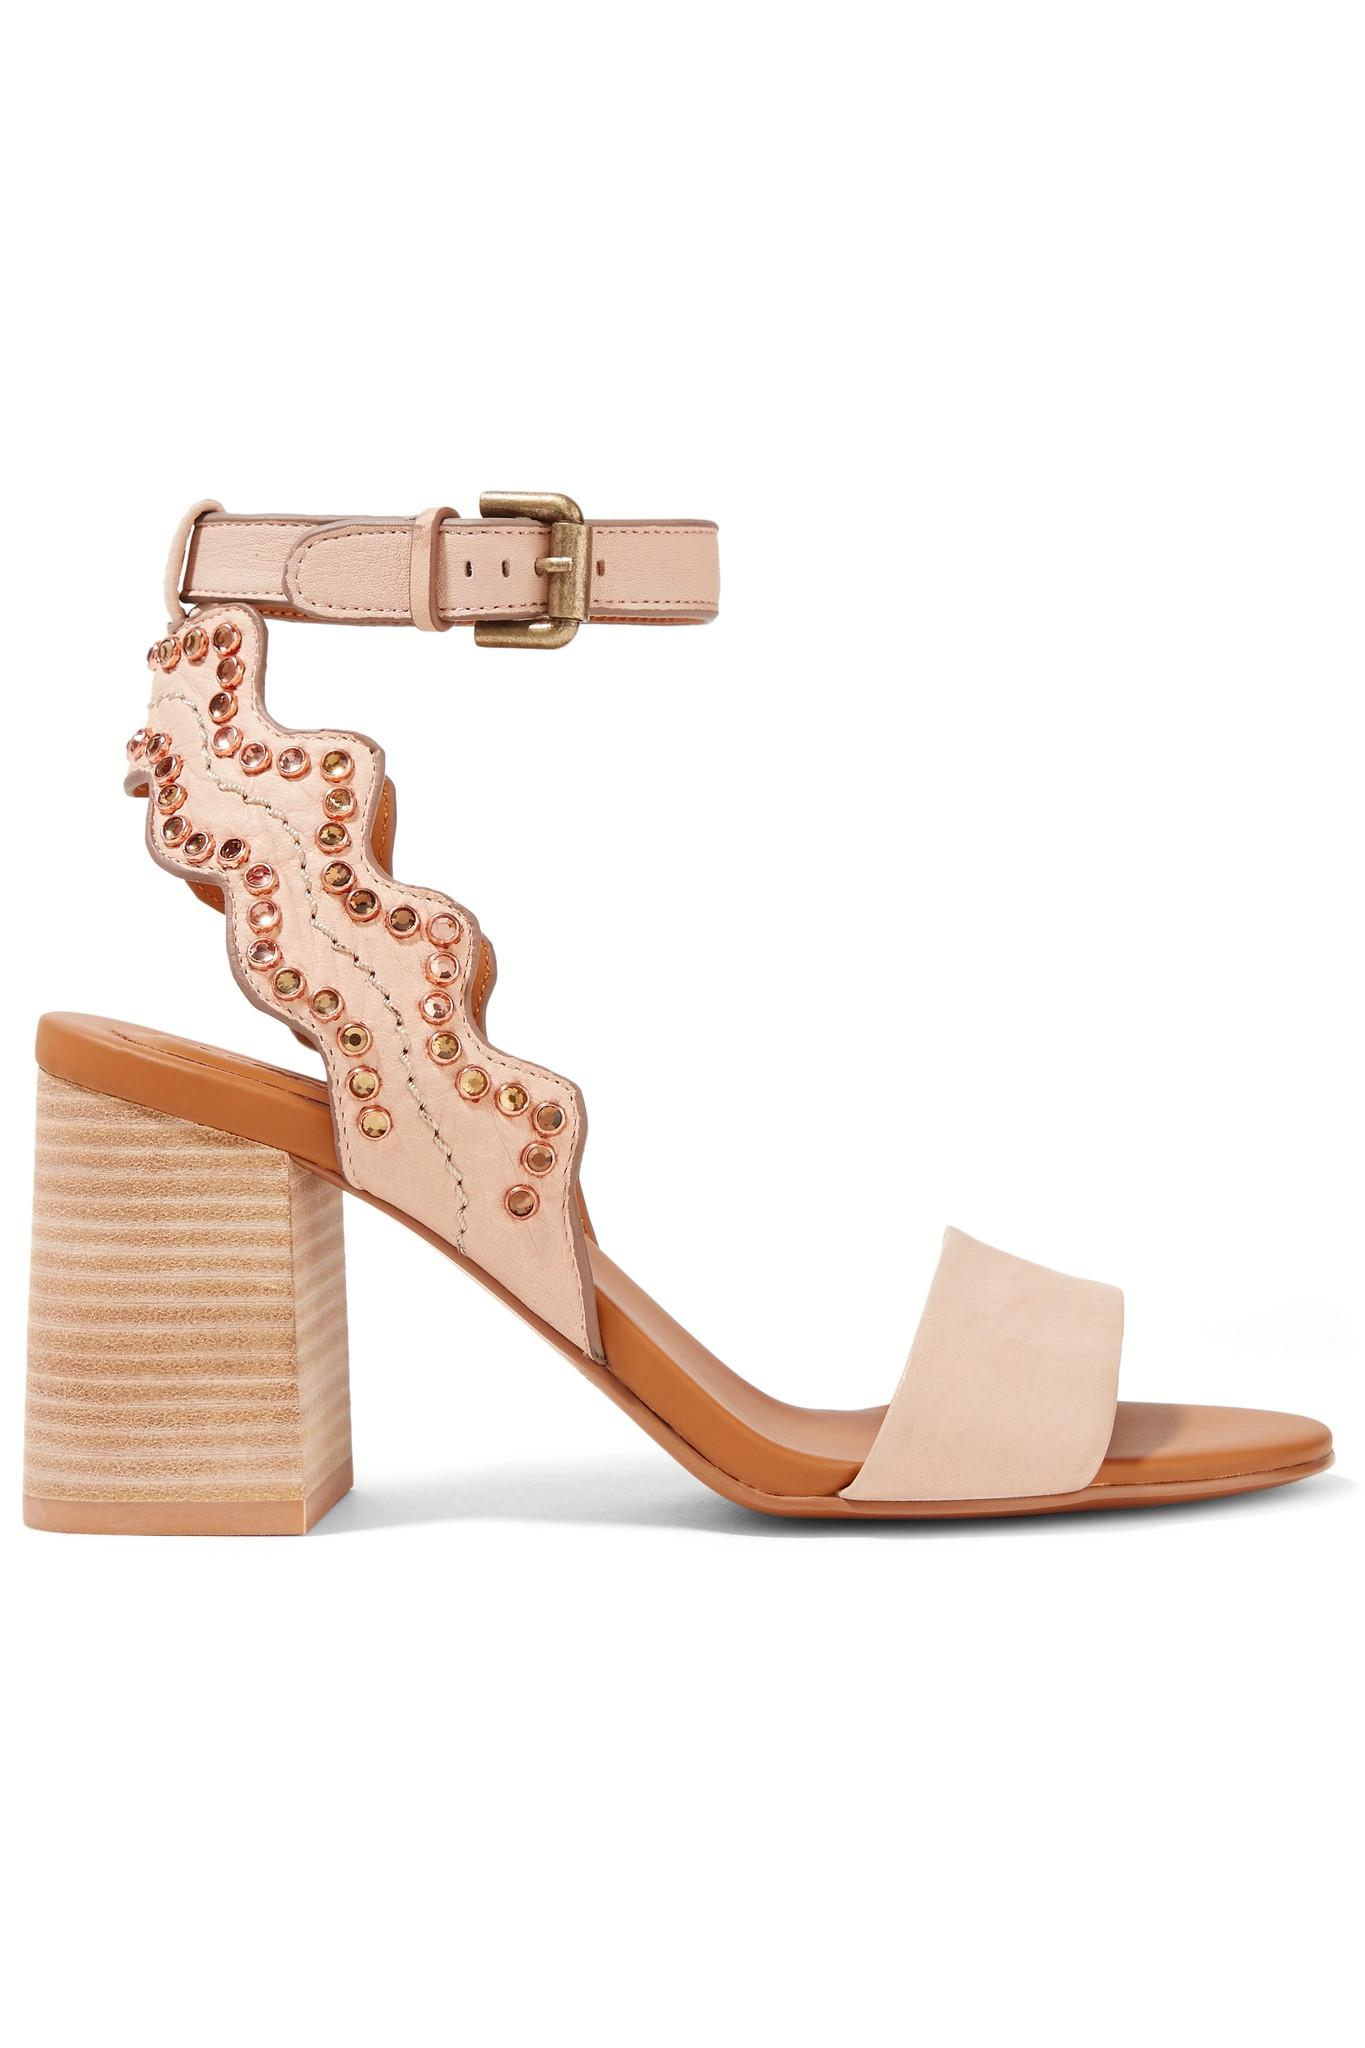 Crystal-embellished Scalloped Leather Sandals - Beige See By Chloé XyCU0